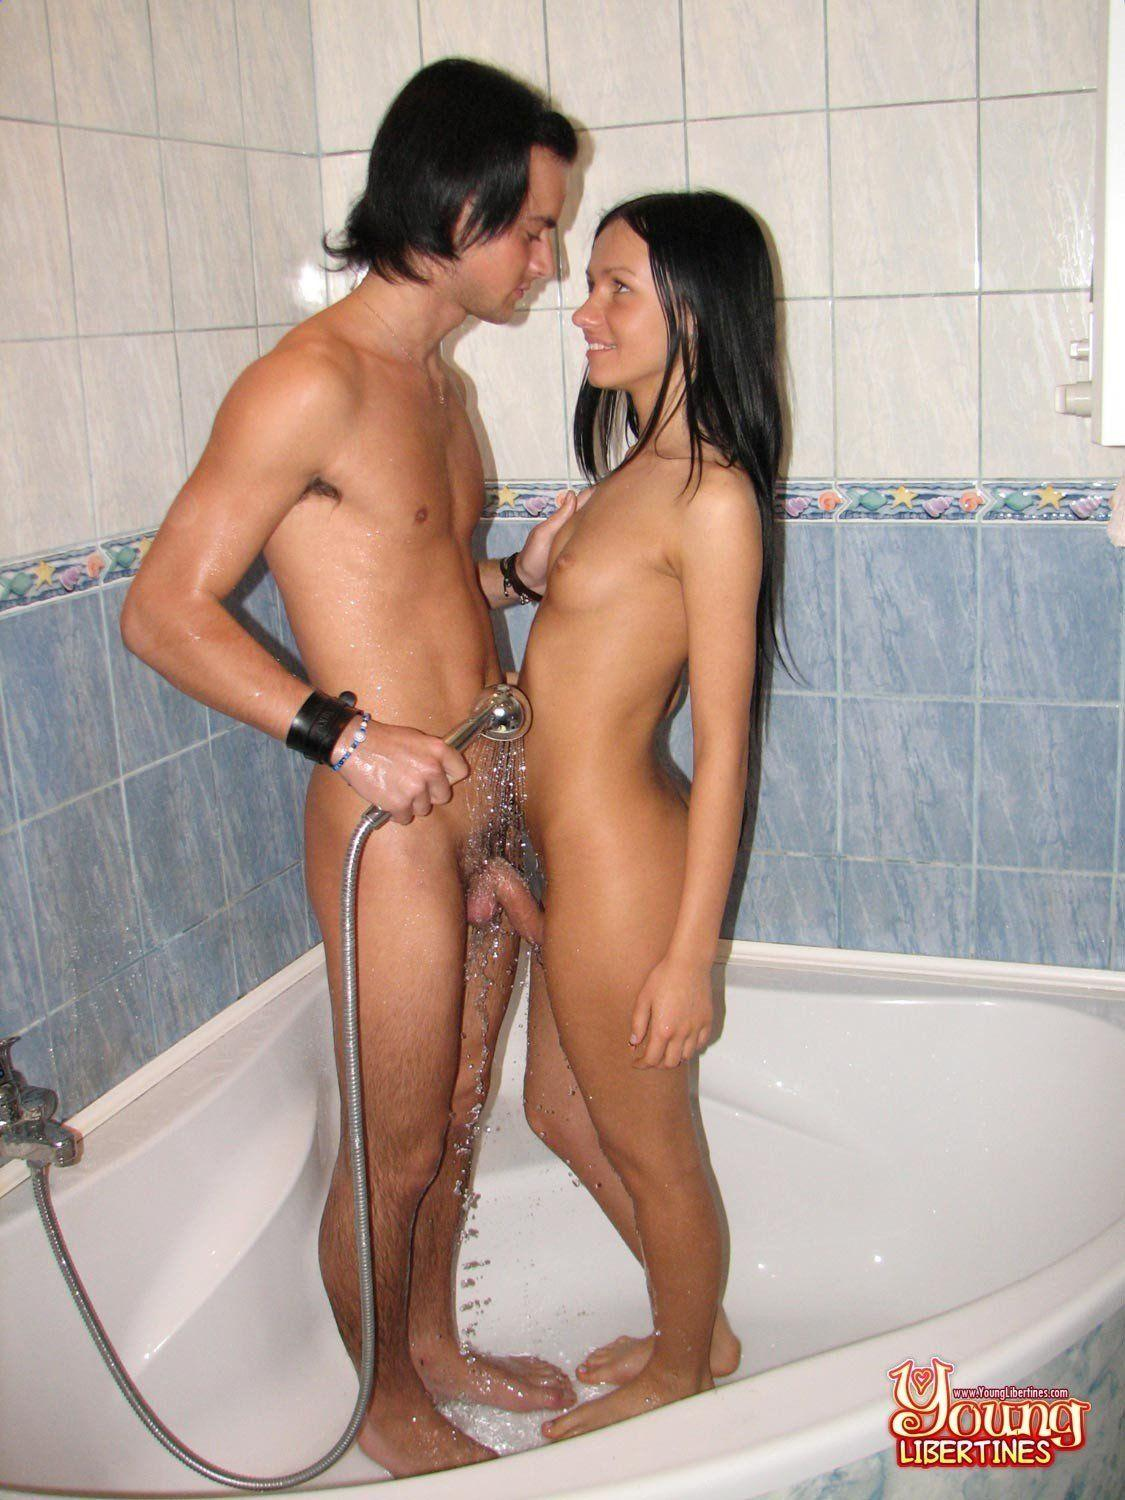 having sex naked with shower head